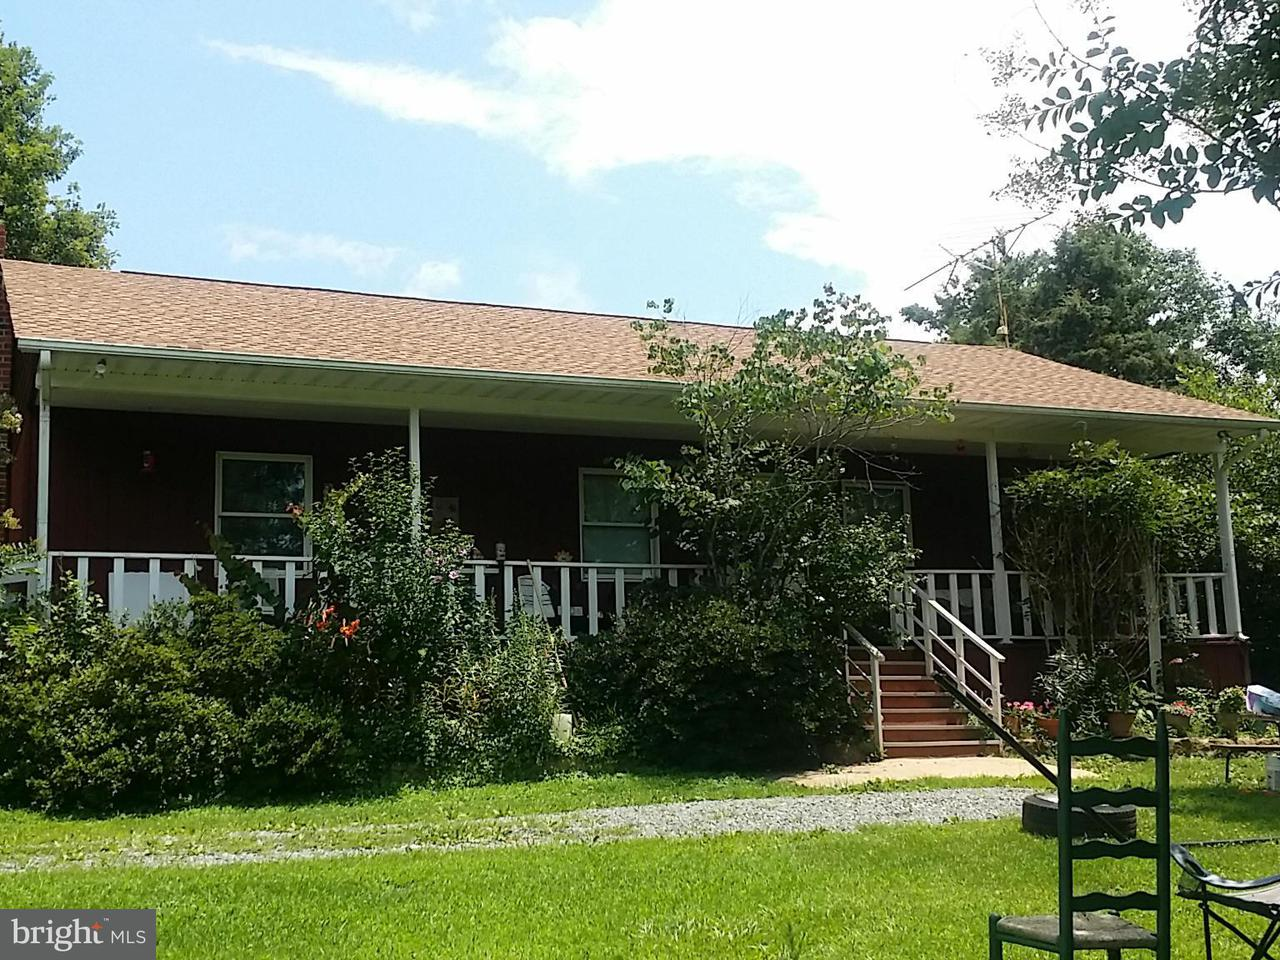 Additional photo for property listing at 3673 BYRD MILL Road 3673 BYRD MILL Road Louisa, Virginia 23093 Estados Unidos